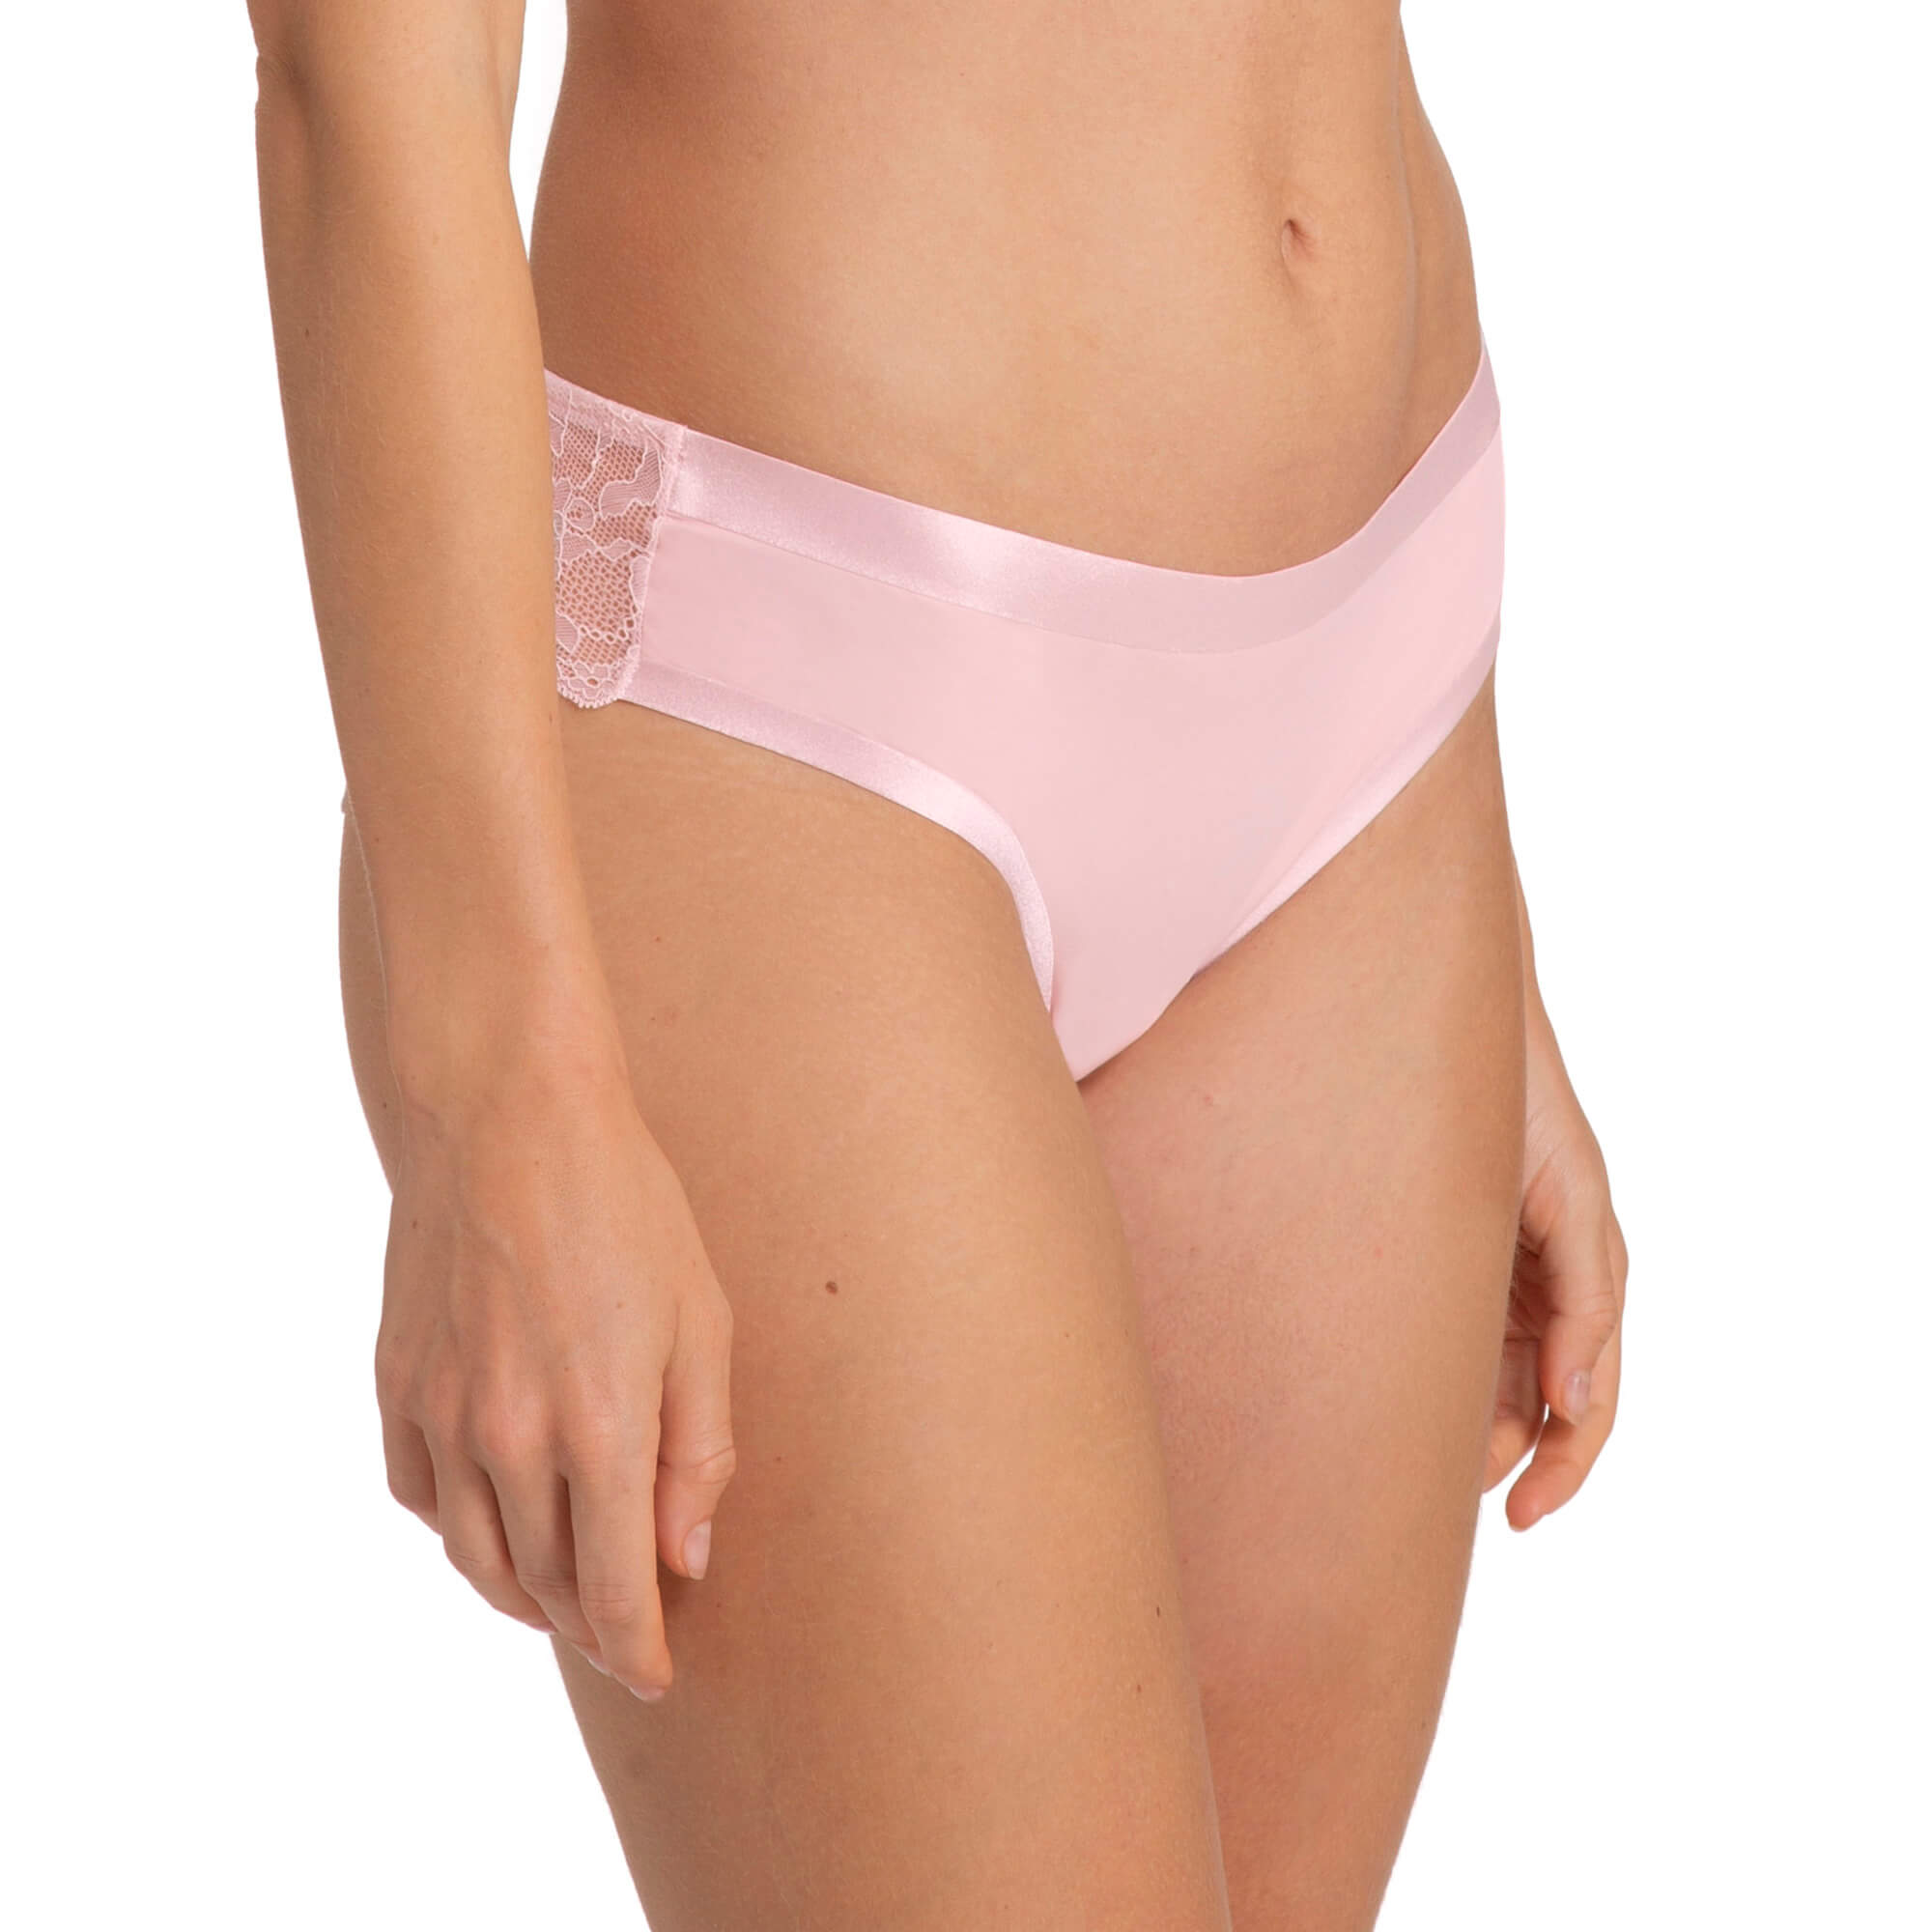 D001010   CRYSTAL BRIEF CLASSIC